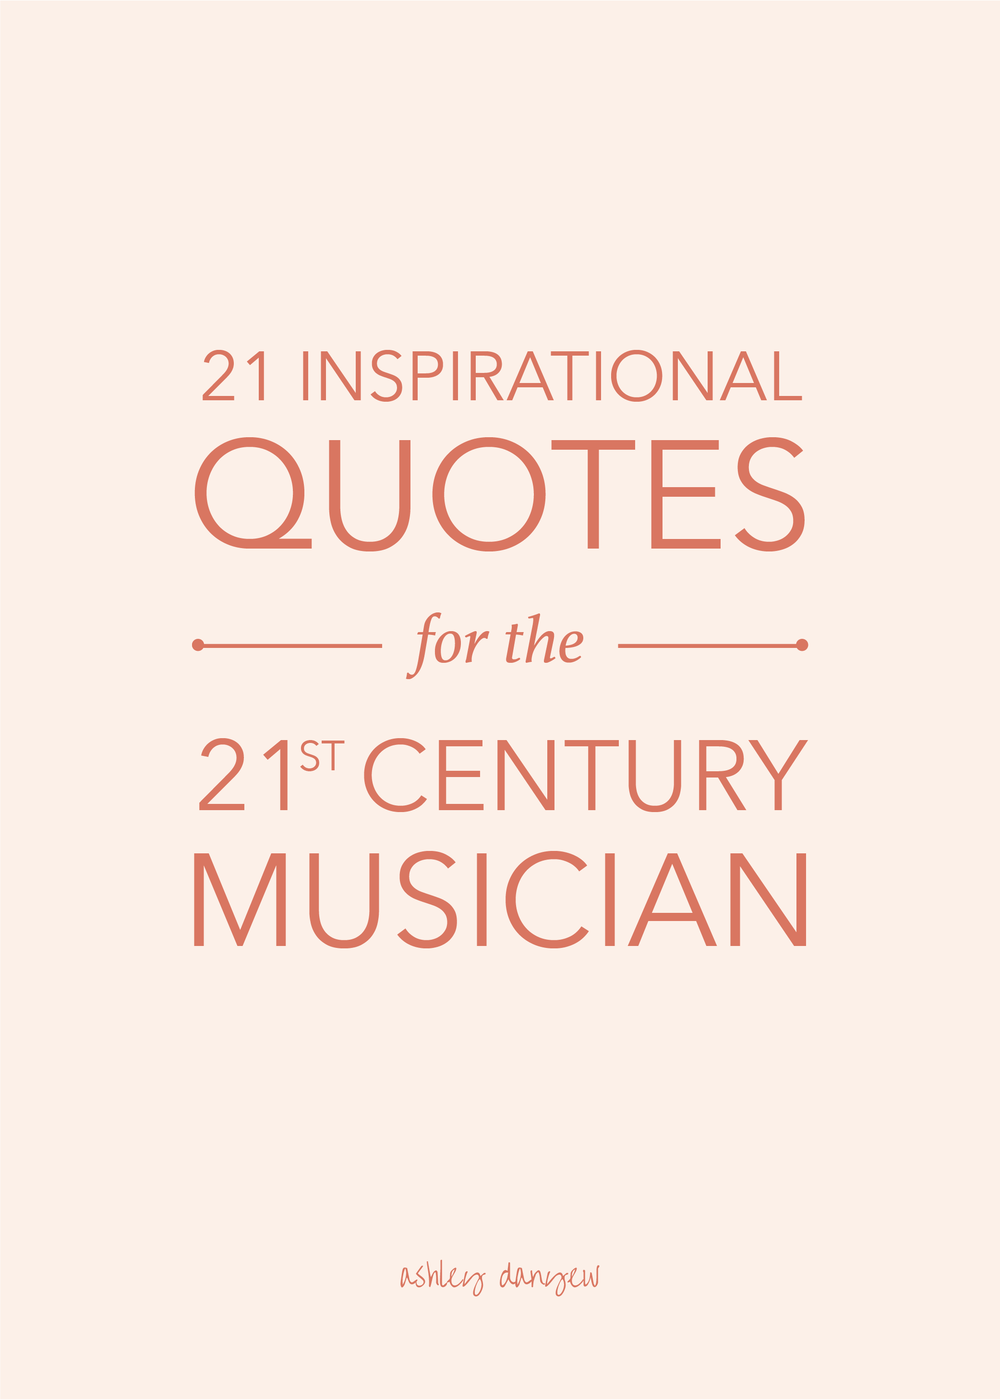 21 Inspirational Quotes for the 21st Century Musician-01.png